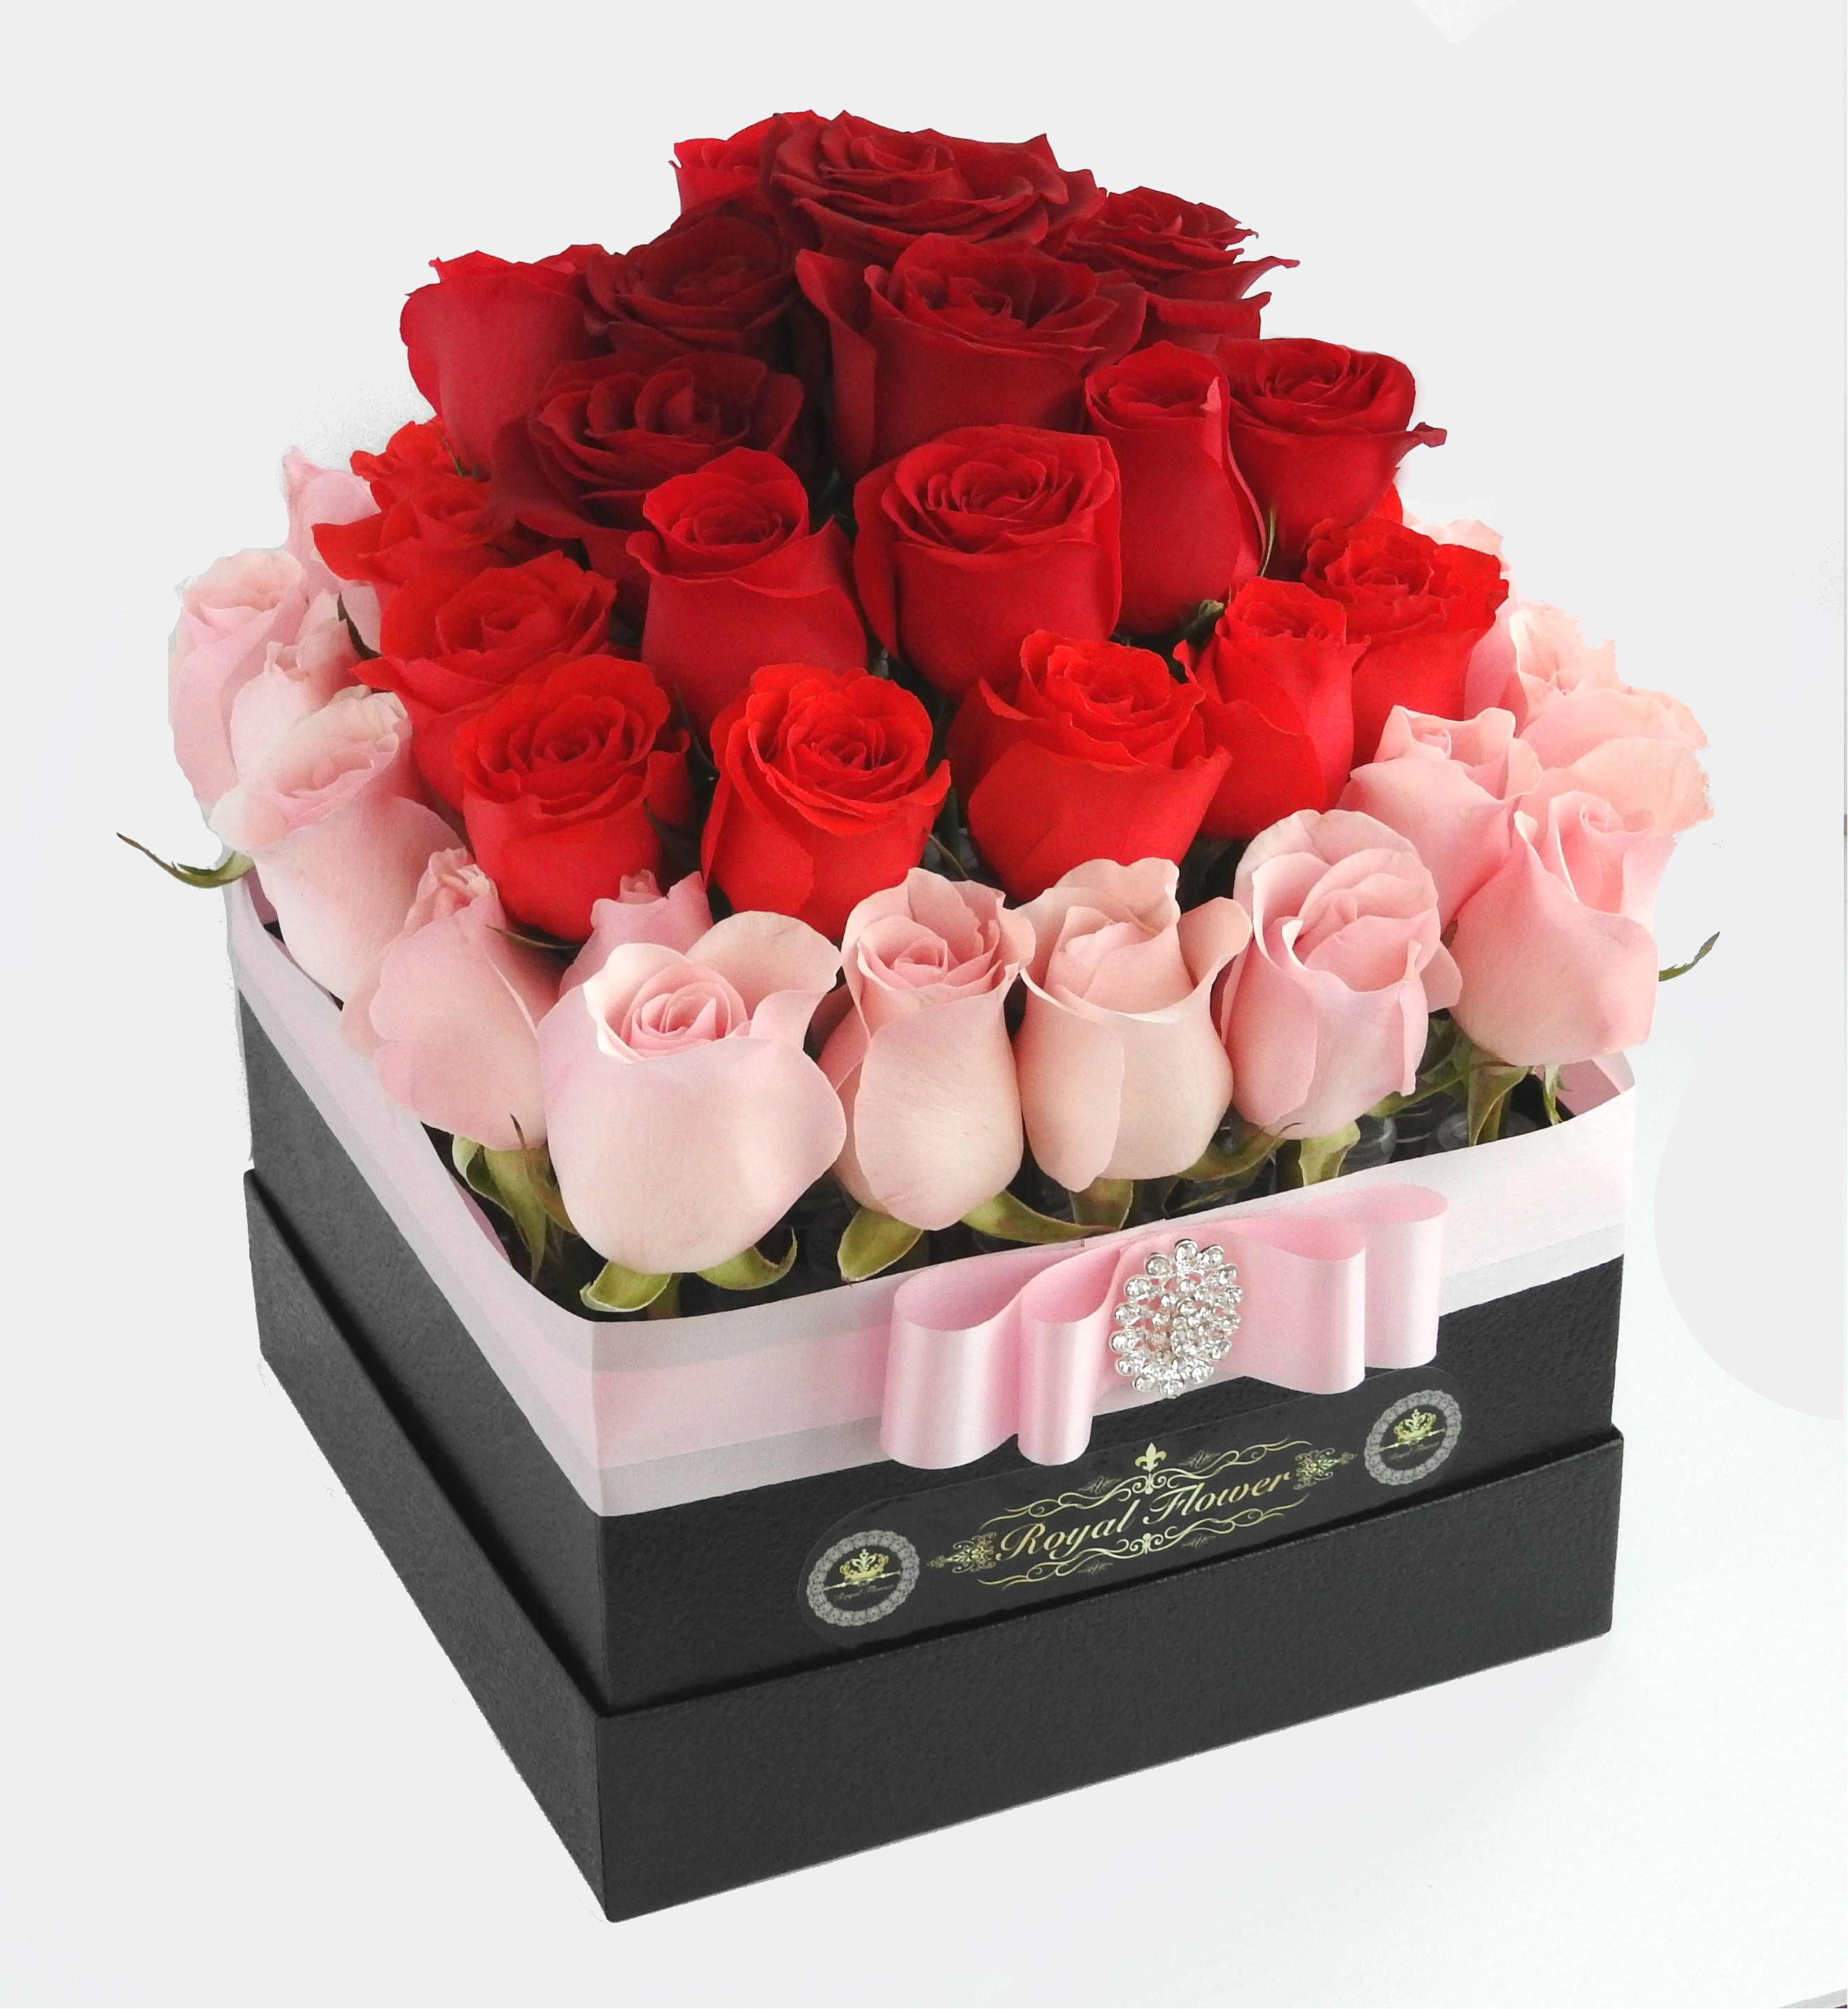 Luxury Hand Picked White Or Light Pink Royal Roses Based On Our Inventory Coral Beautiful Bouquet Of Flowers Birthday Flowers Bouquet Flowers Bouquet Gift